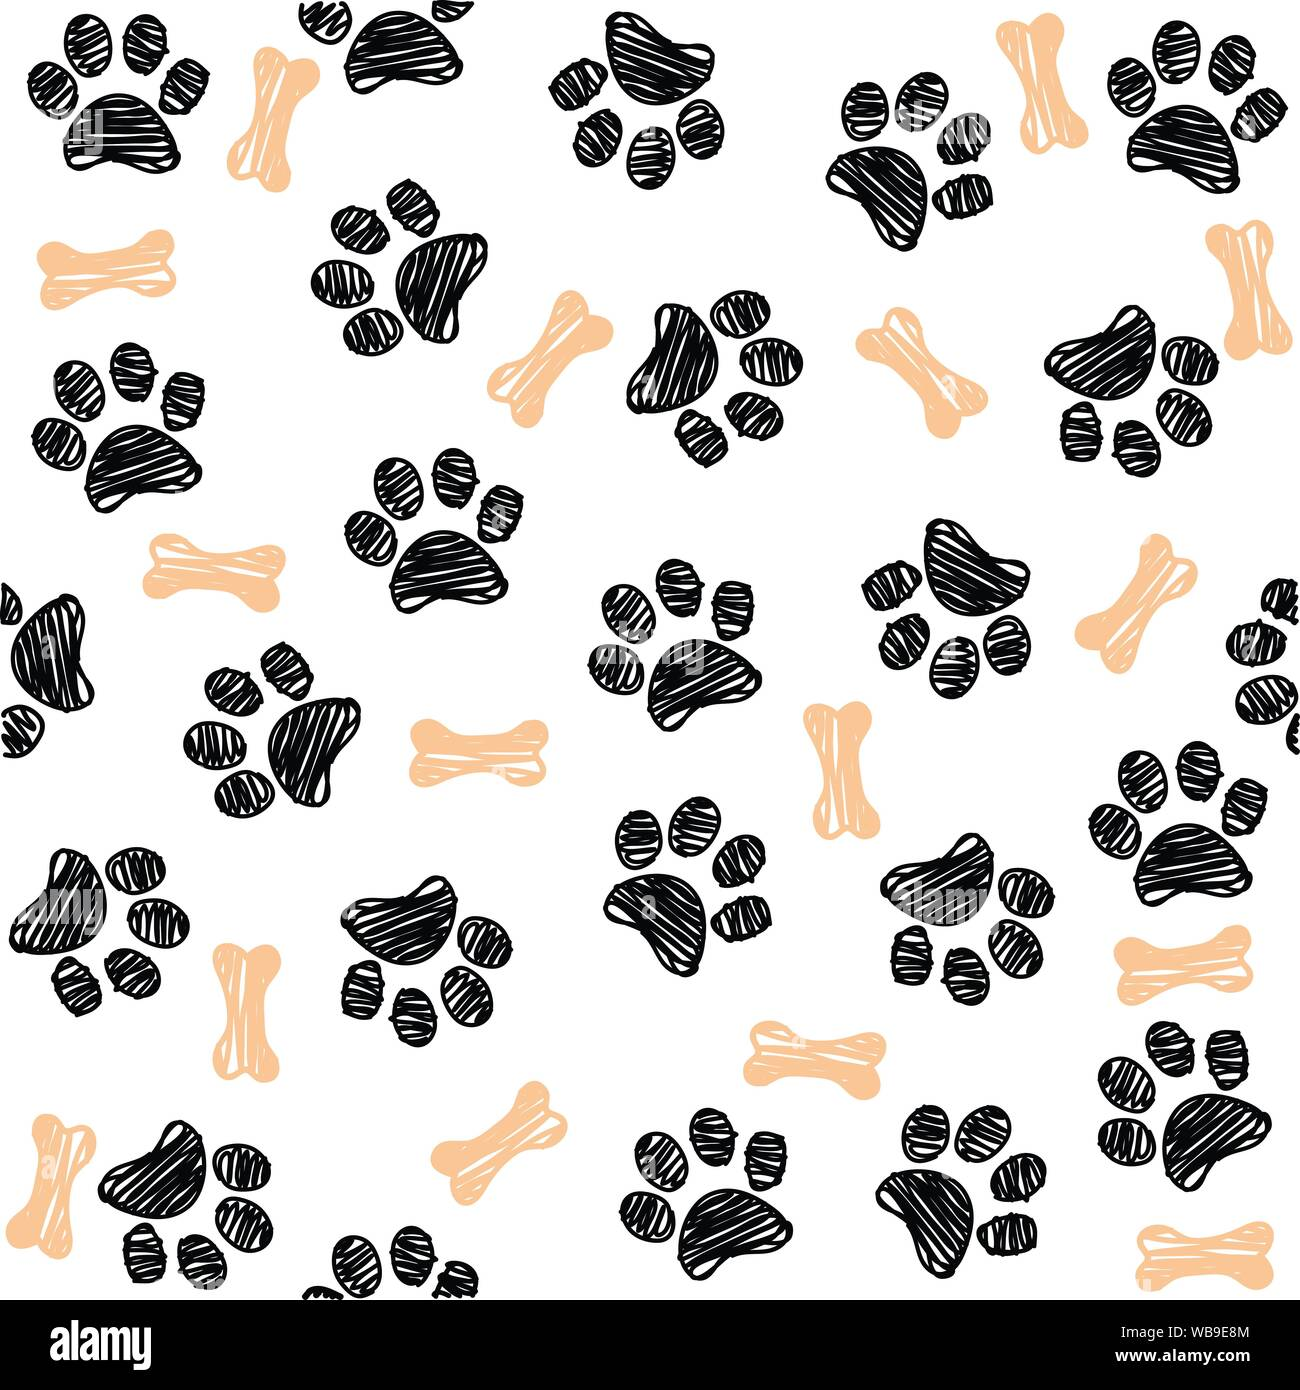 In Stock Paws